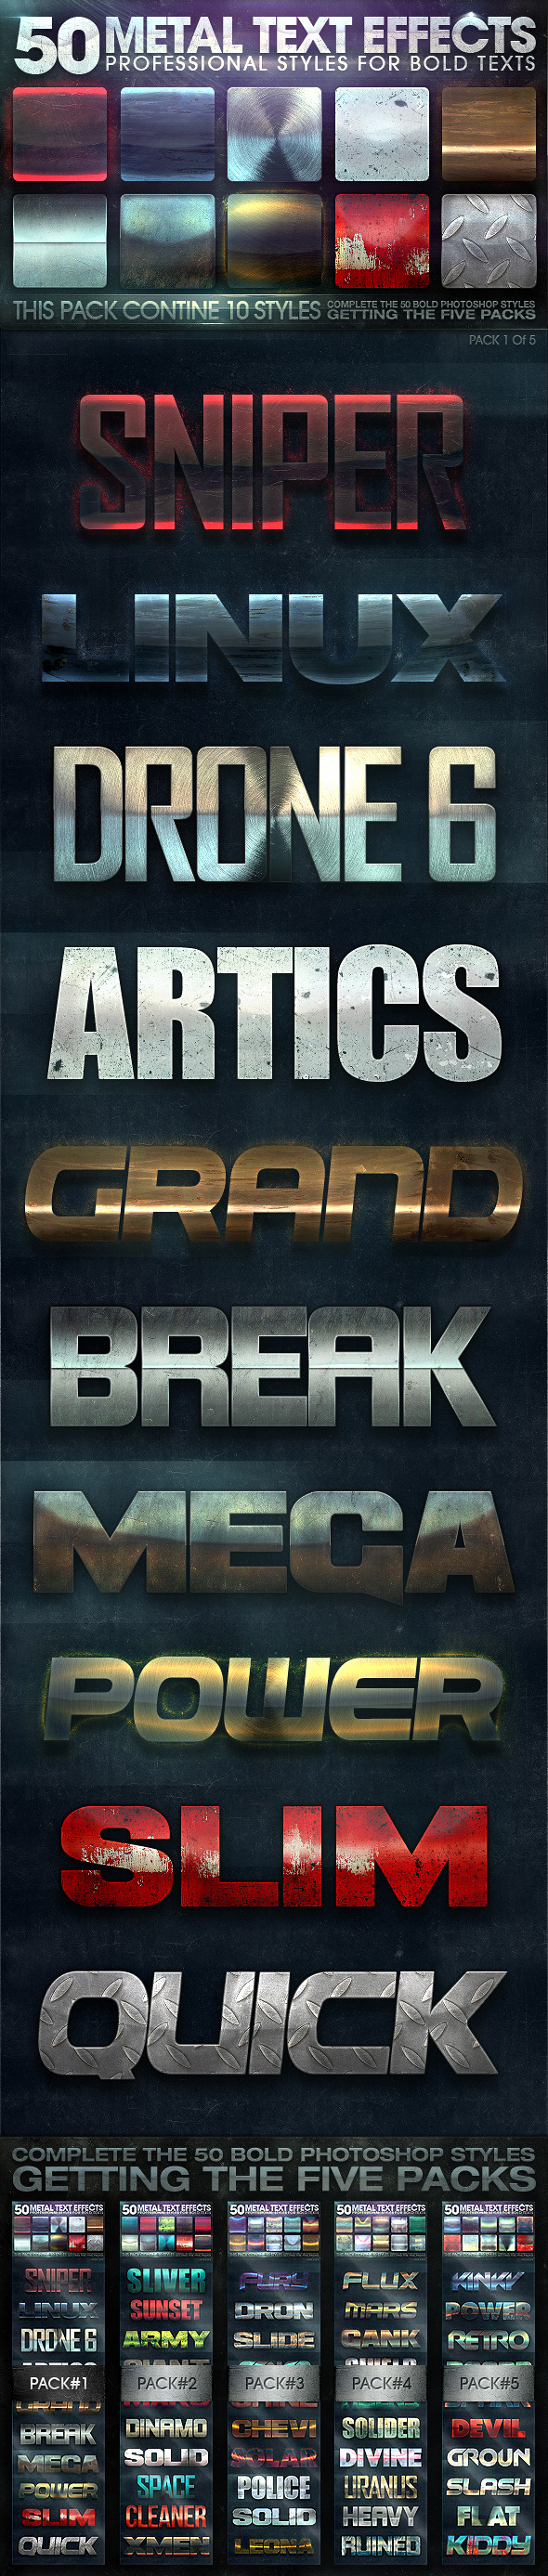 GraphicRiver 50 Metal Text Effects 1 of 5 10678899